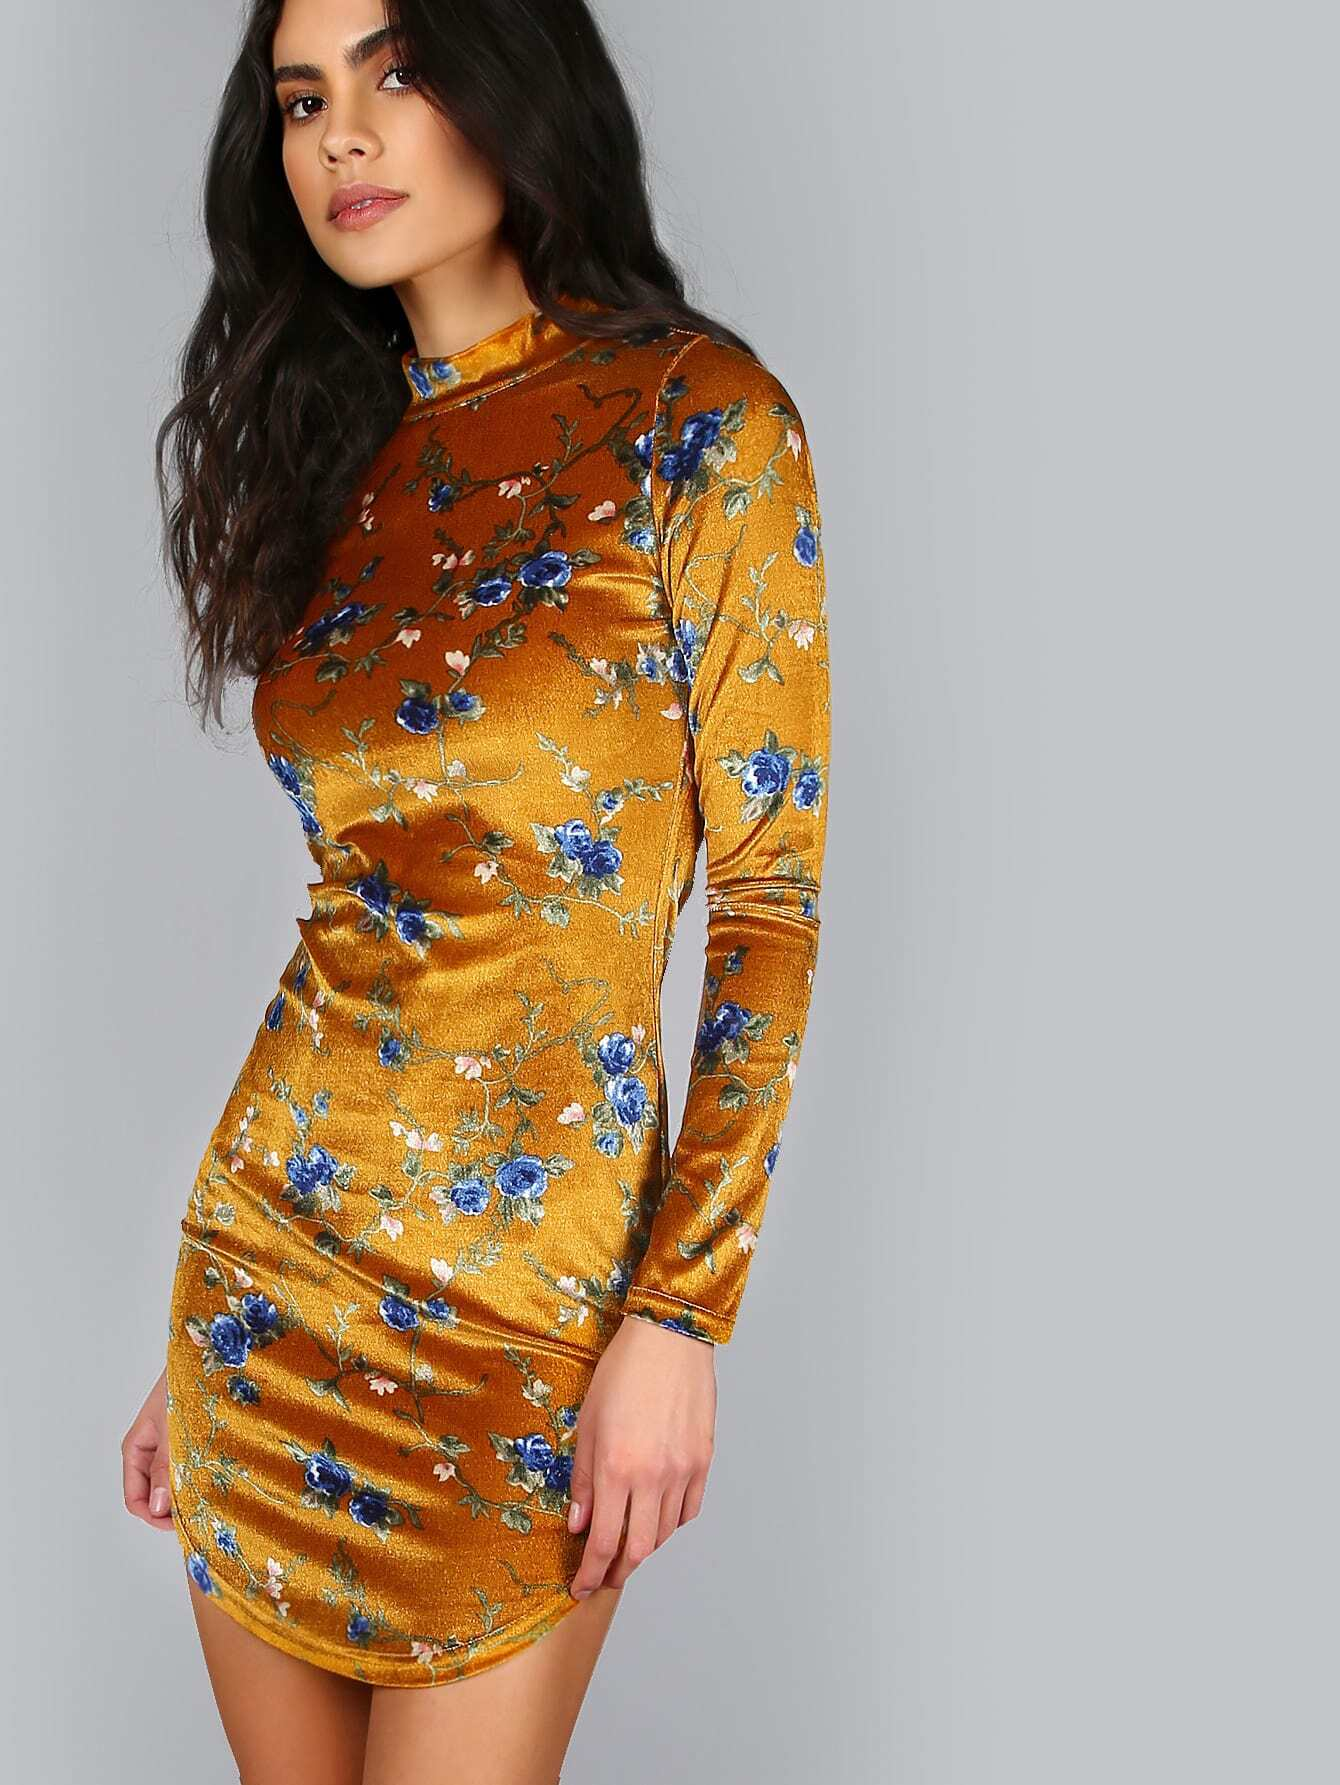 Yellow Floral Print Mock Neck Long Sleeve Bodycon DressYellow Floral Print Mock Neck Long Sleeve Bodycon Dress<br><br>color: Yellow<br>size: L,M,S,XS